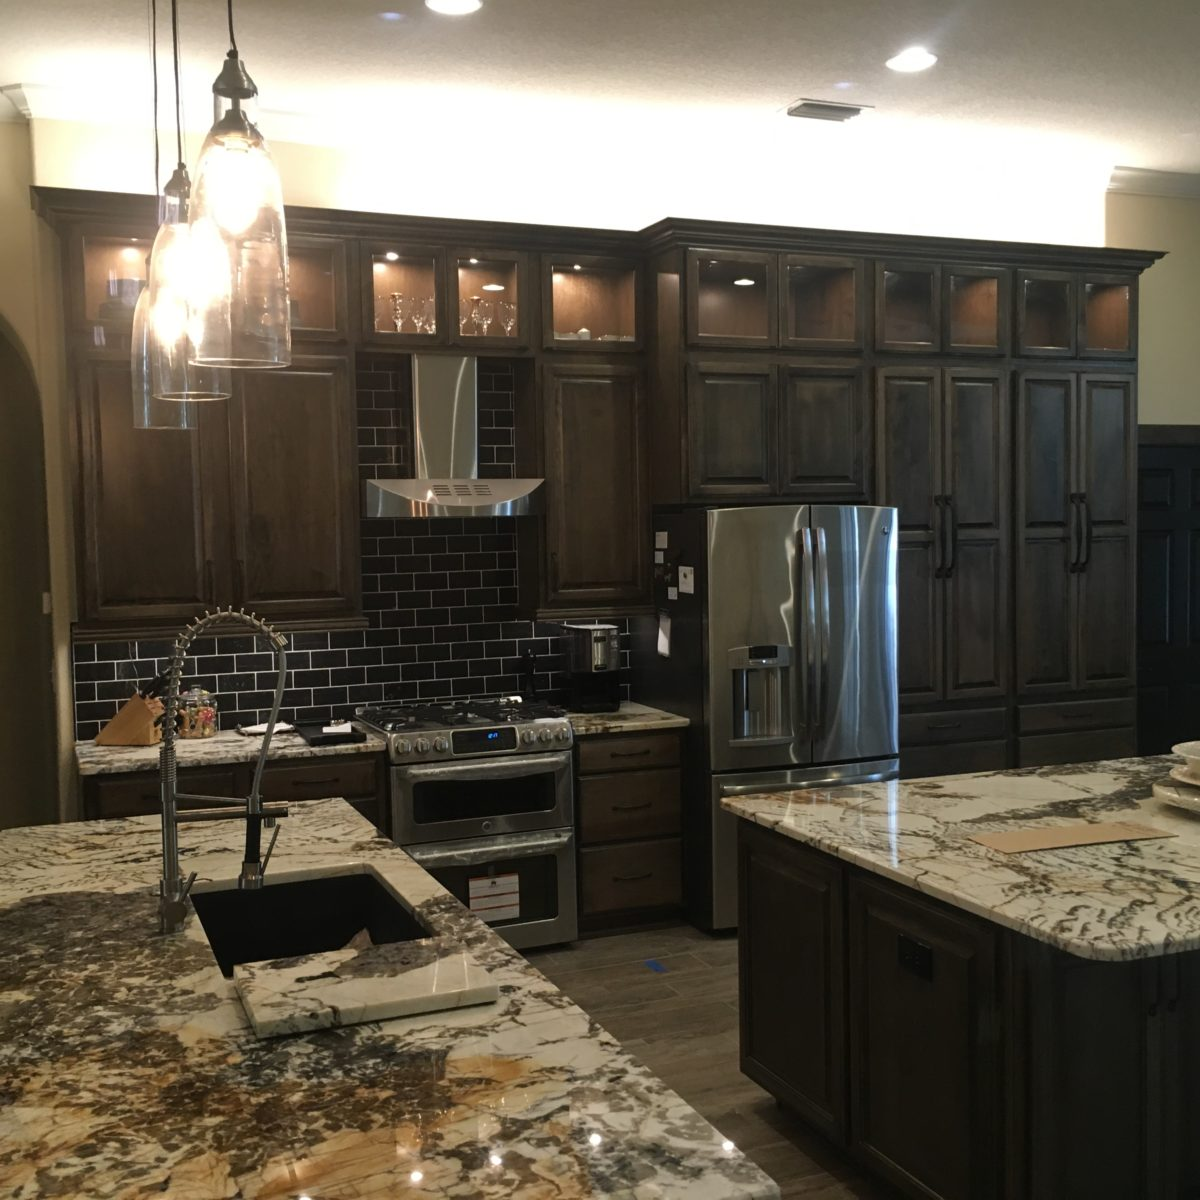 Bellmont cabinets alba kitchen design center kitchen cabinets nj Kitchen and bath design center lake hopatcong nj